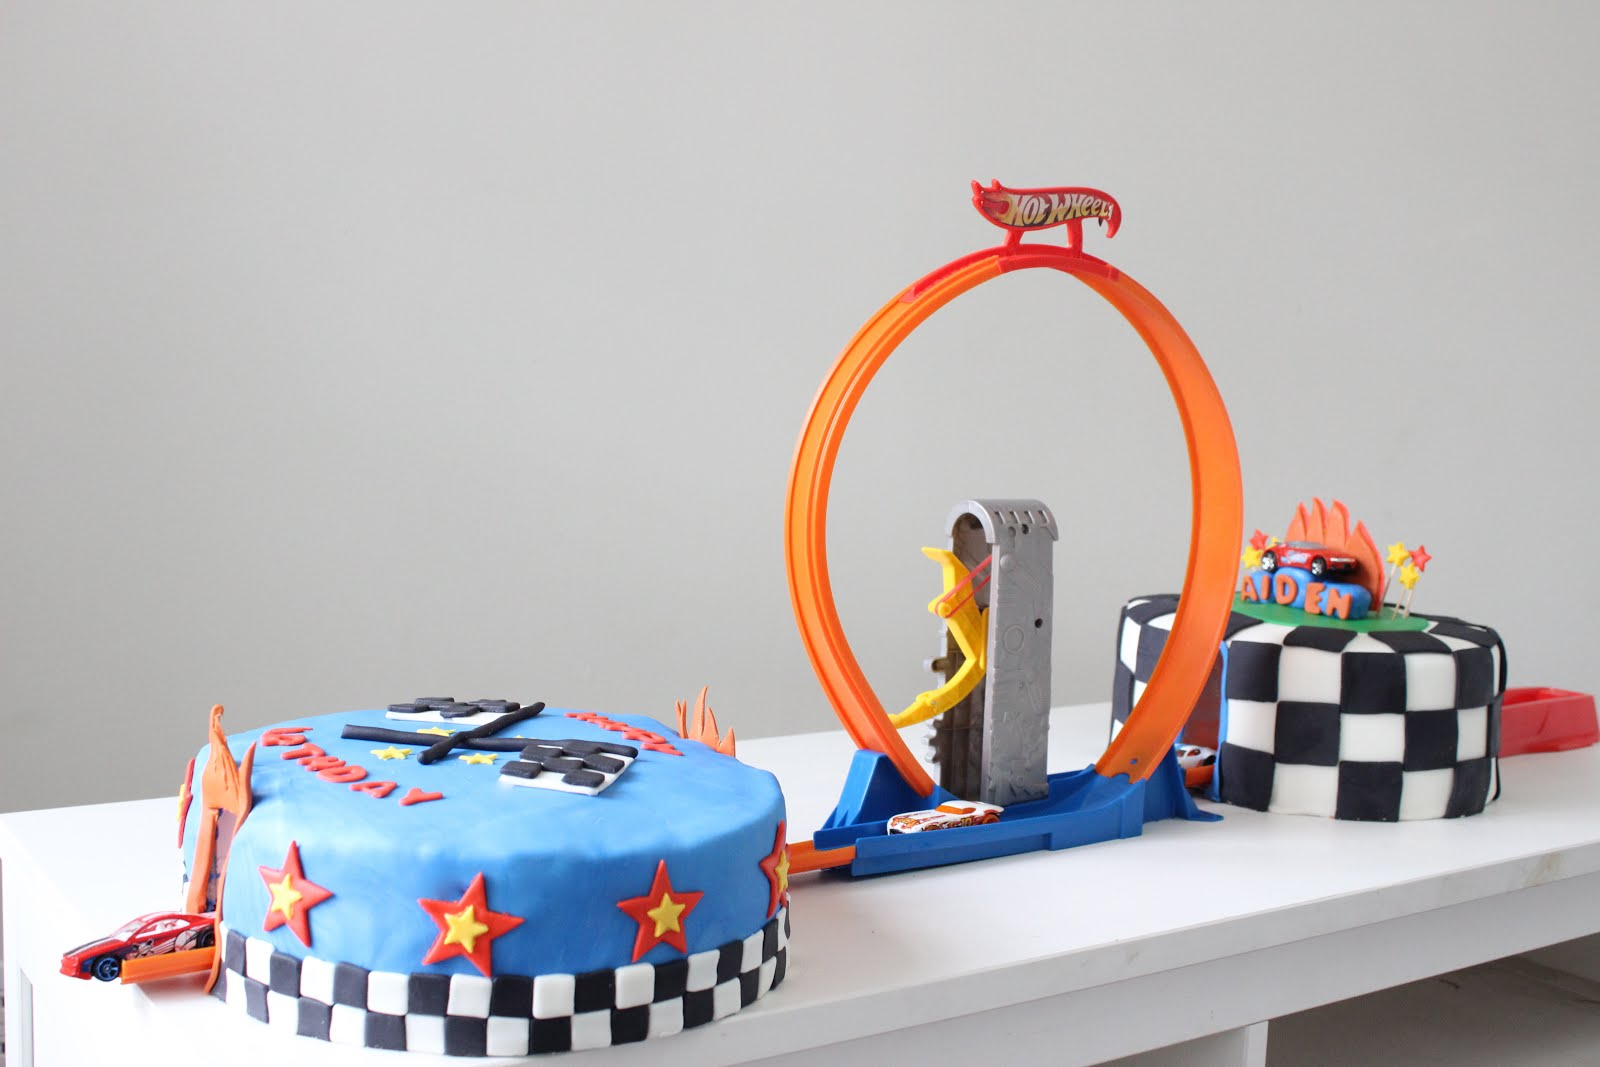 Images Of Hot Wheels Cake : Changs and Changes: And another Hot Wheels Cake...